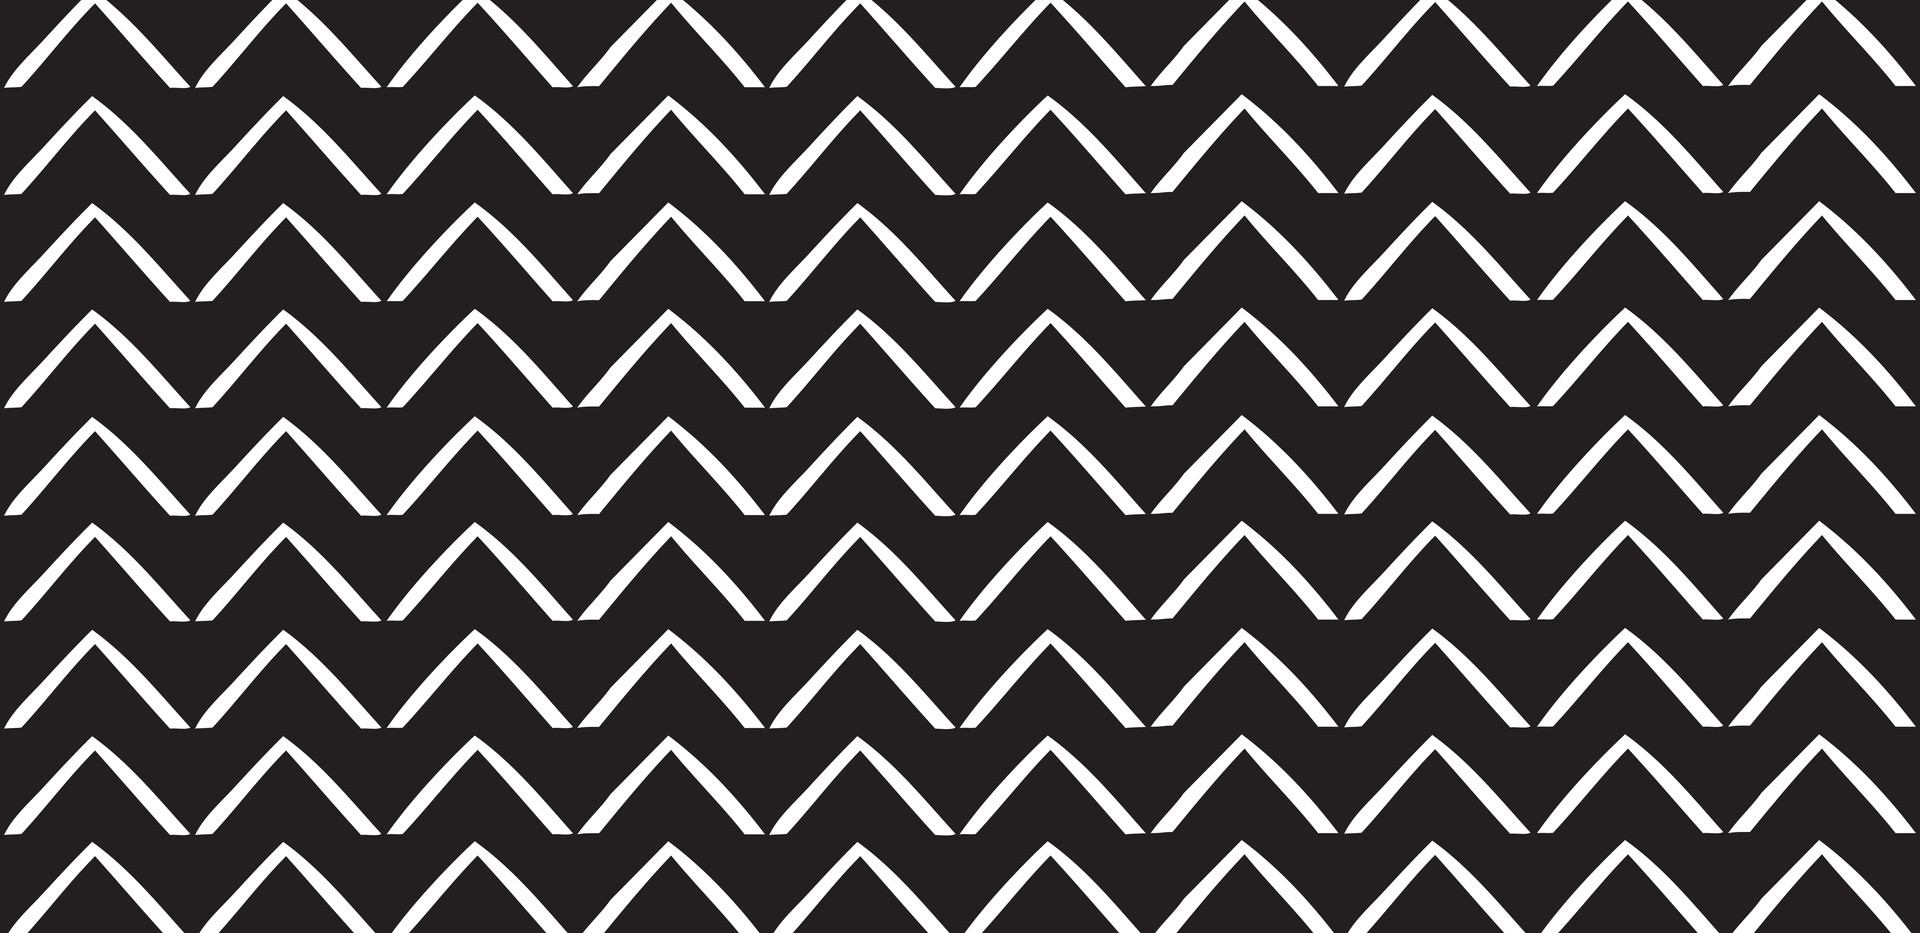 ZigZag Arrows . Black Onyx